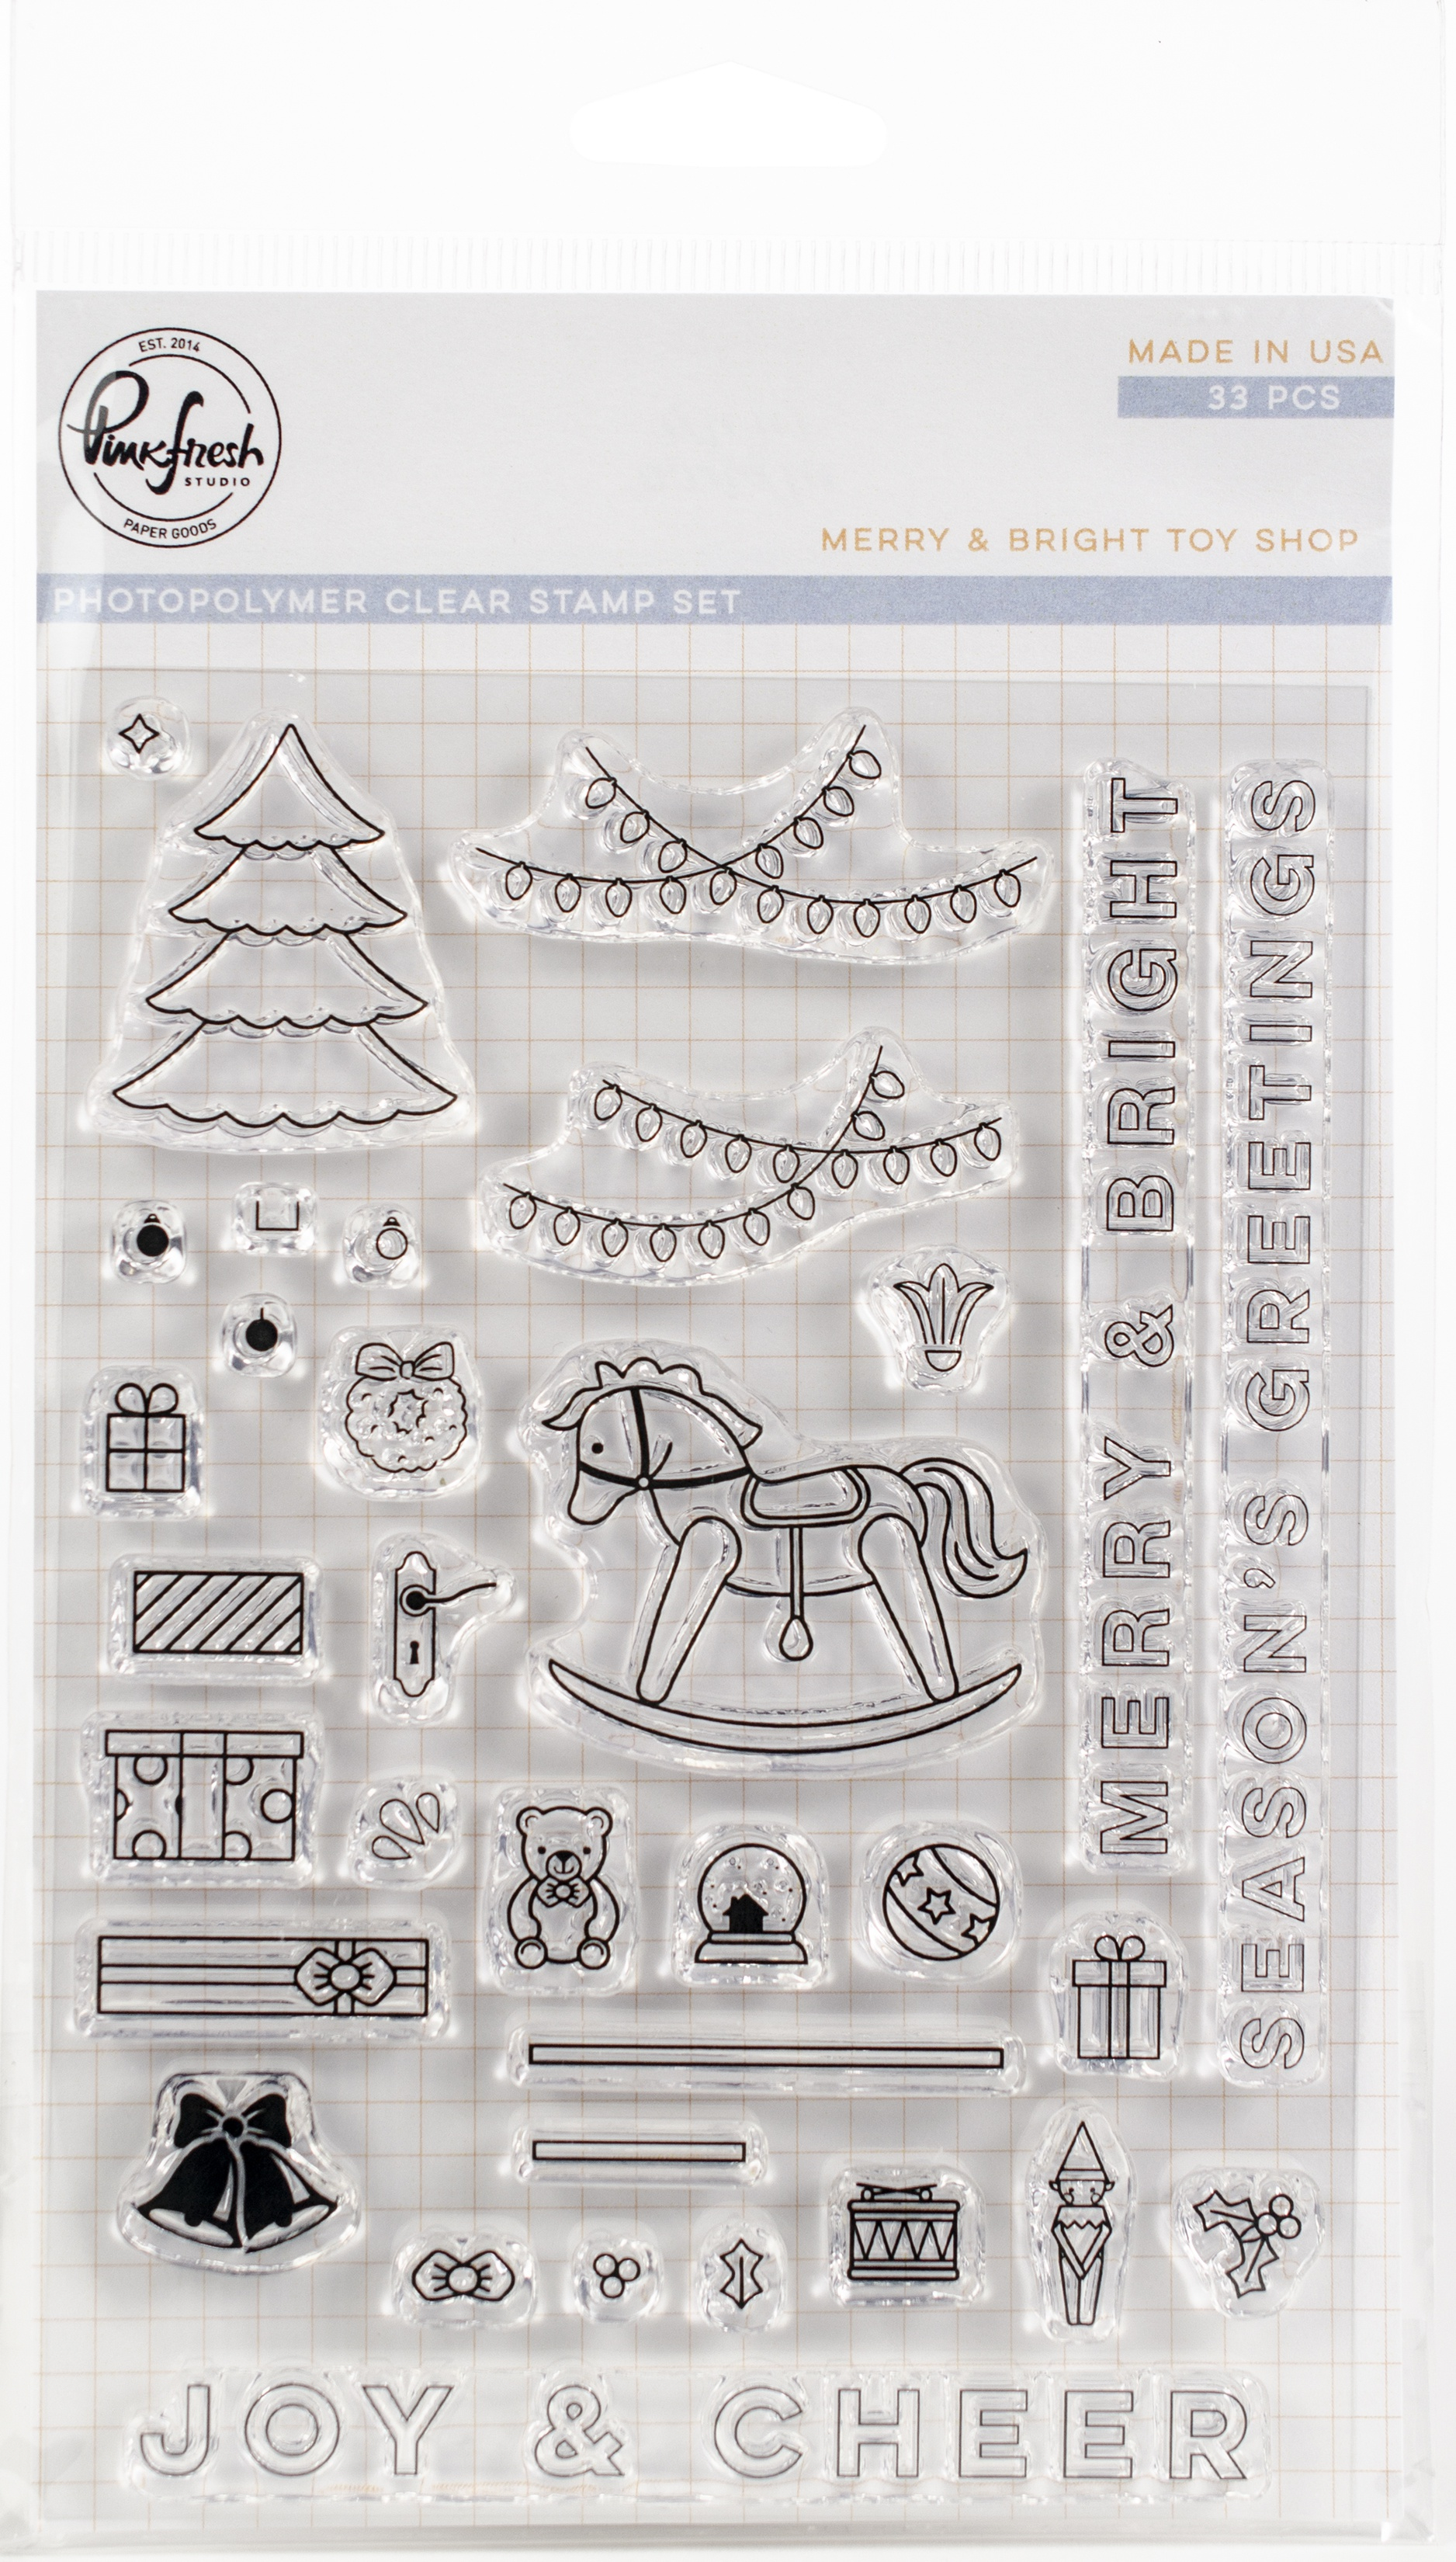 Pinkfresh Studio Clear Stamp Set 4X6-Merry & Bright Toy Shop